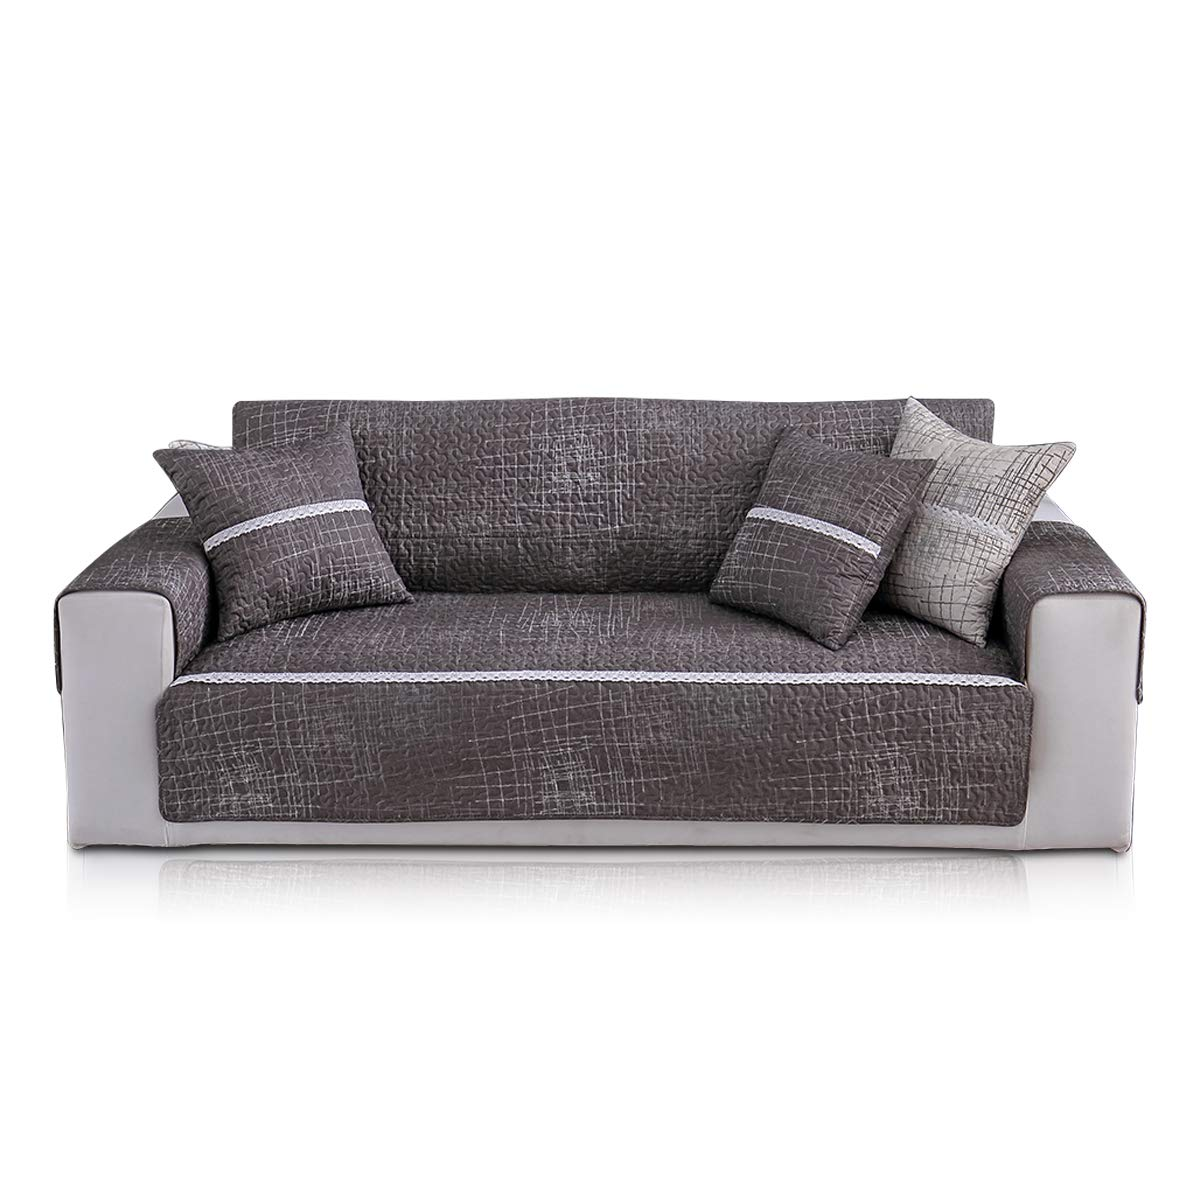 PETCUTE Sofa Covers Cotton Sofa Slipcovers Elegant Sofa Predector Sofa Throw Couch Covers Armchair Covers 1 Seater